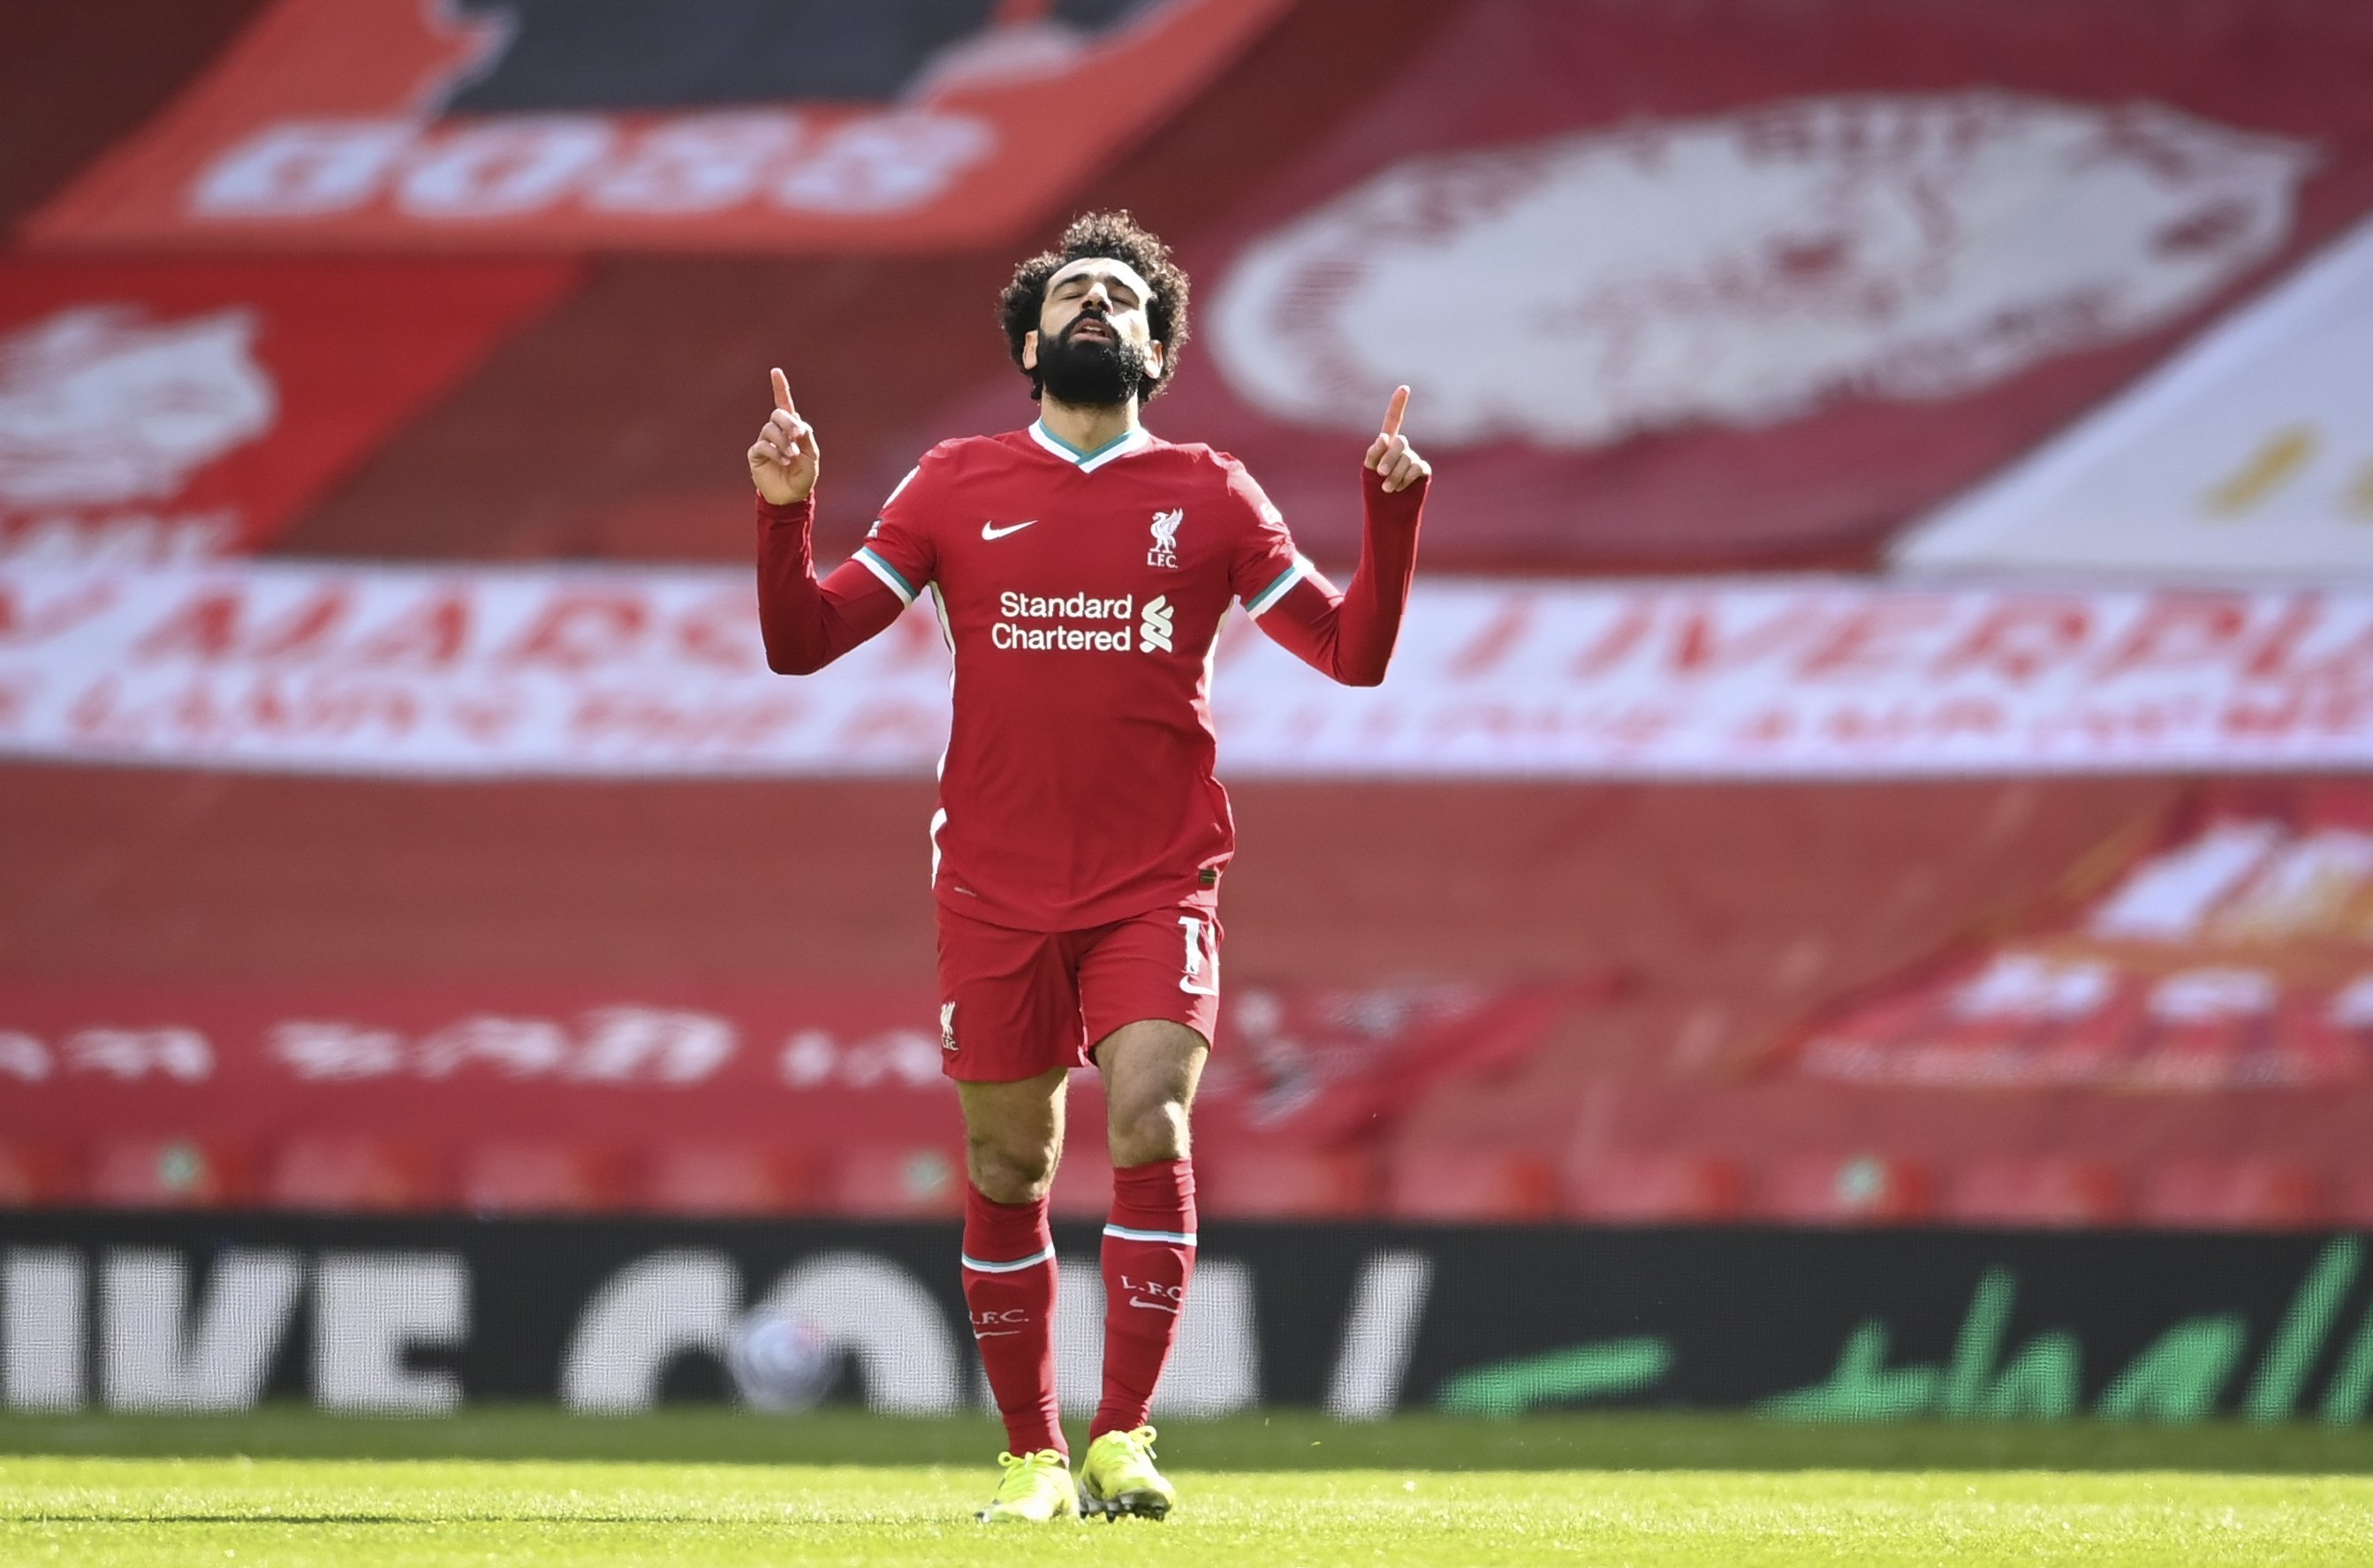 Liverpool's Mohamed Salah celebrates after scoring his side's opening goal during the English Premier League soccer match against Aston Villa at Anfield stadium in Liverpool, England, April 10, 2021. (AP/Laurence Griffiths/Pool Photo)